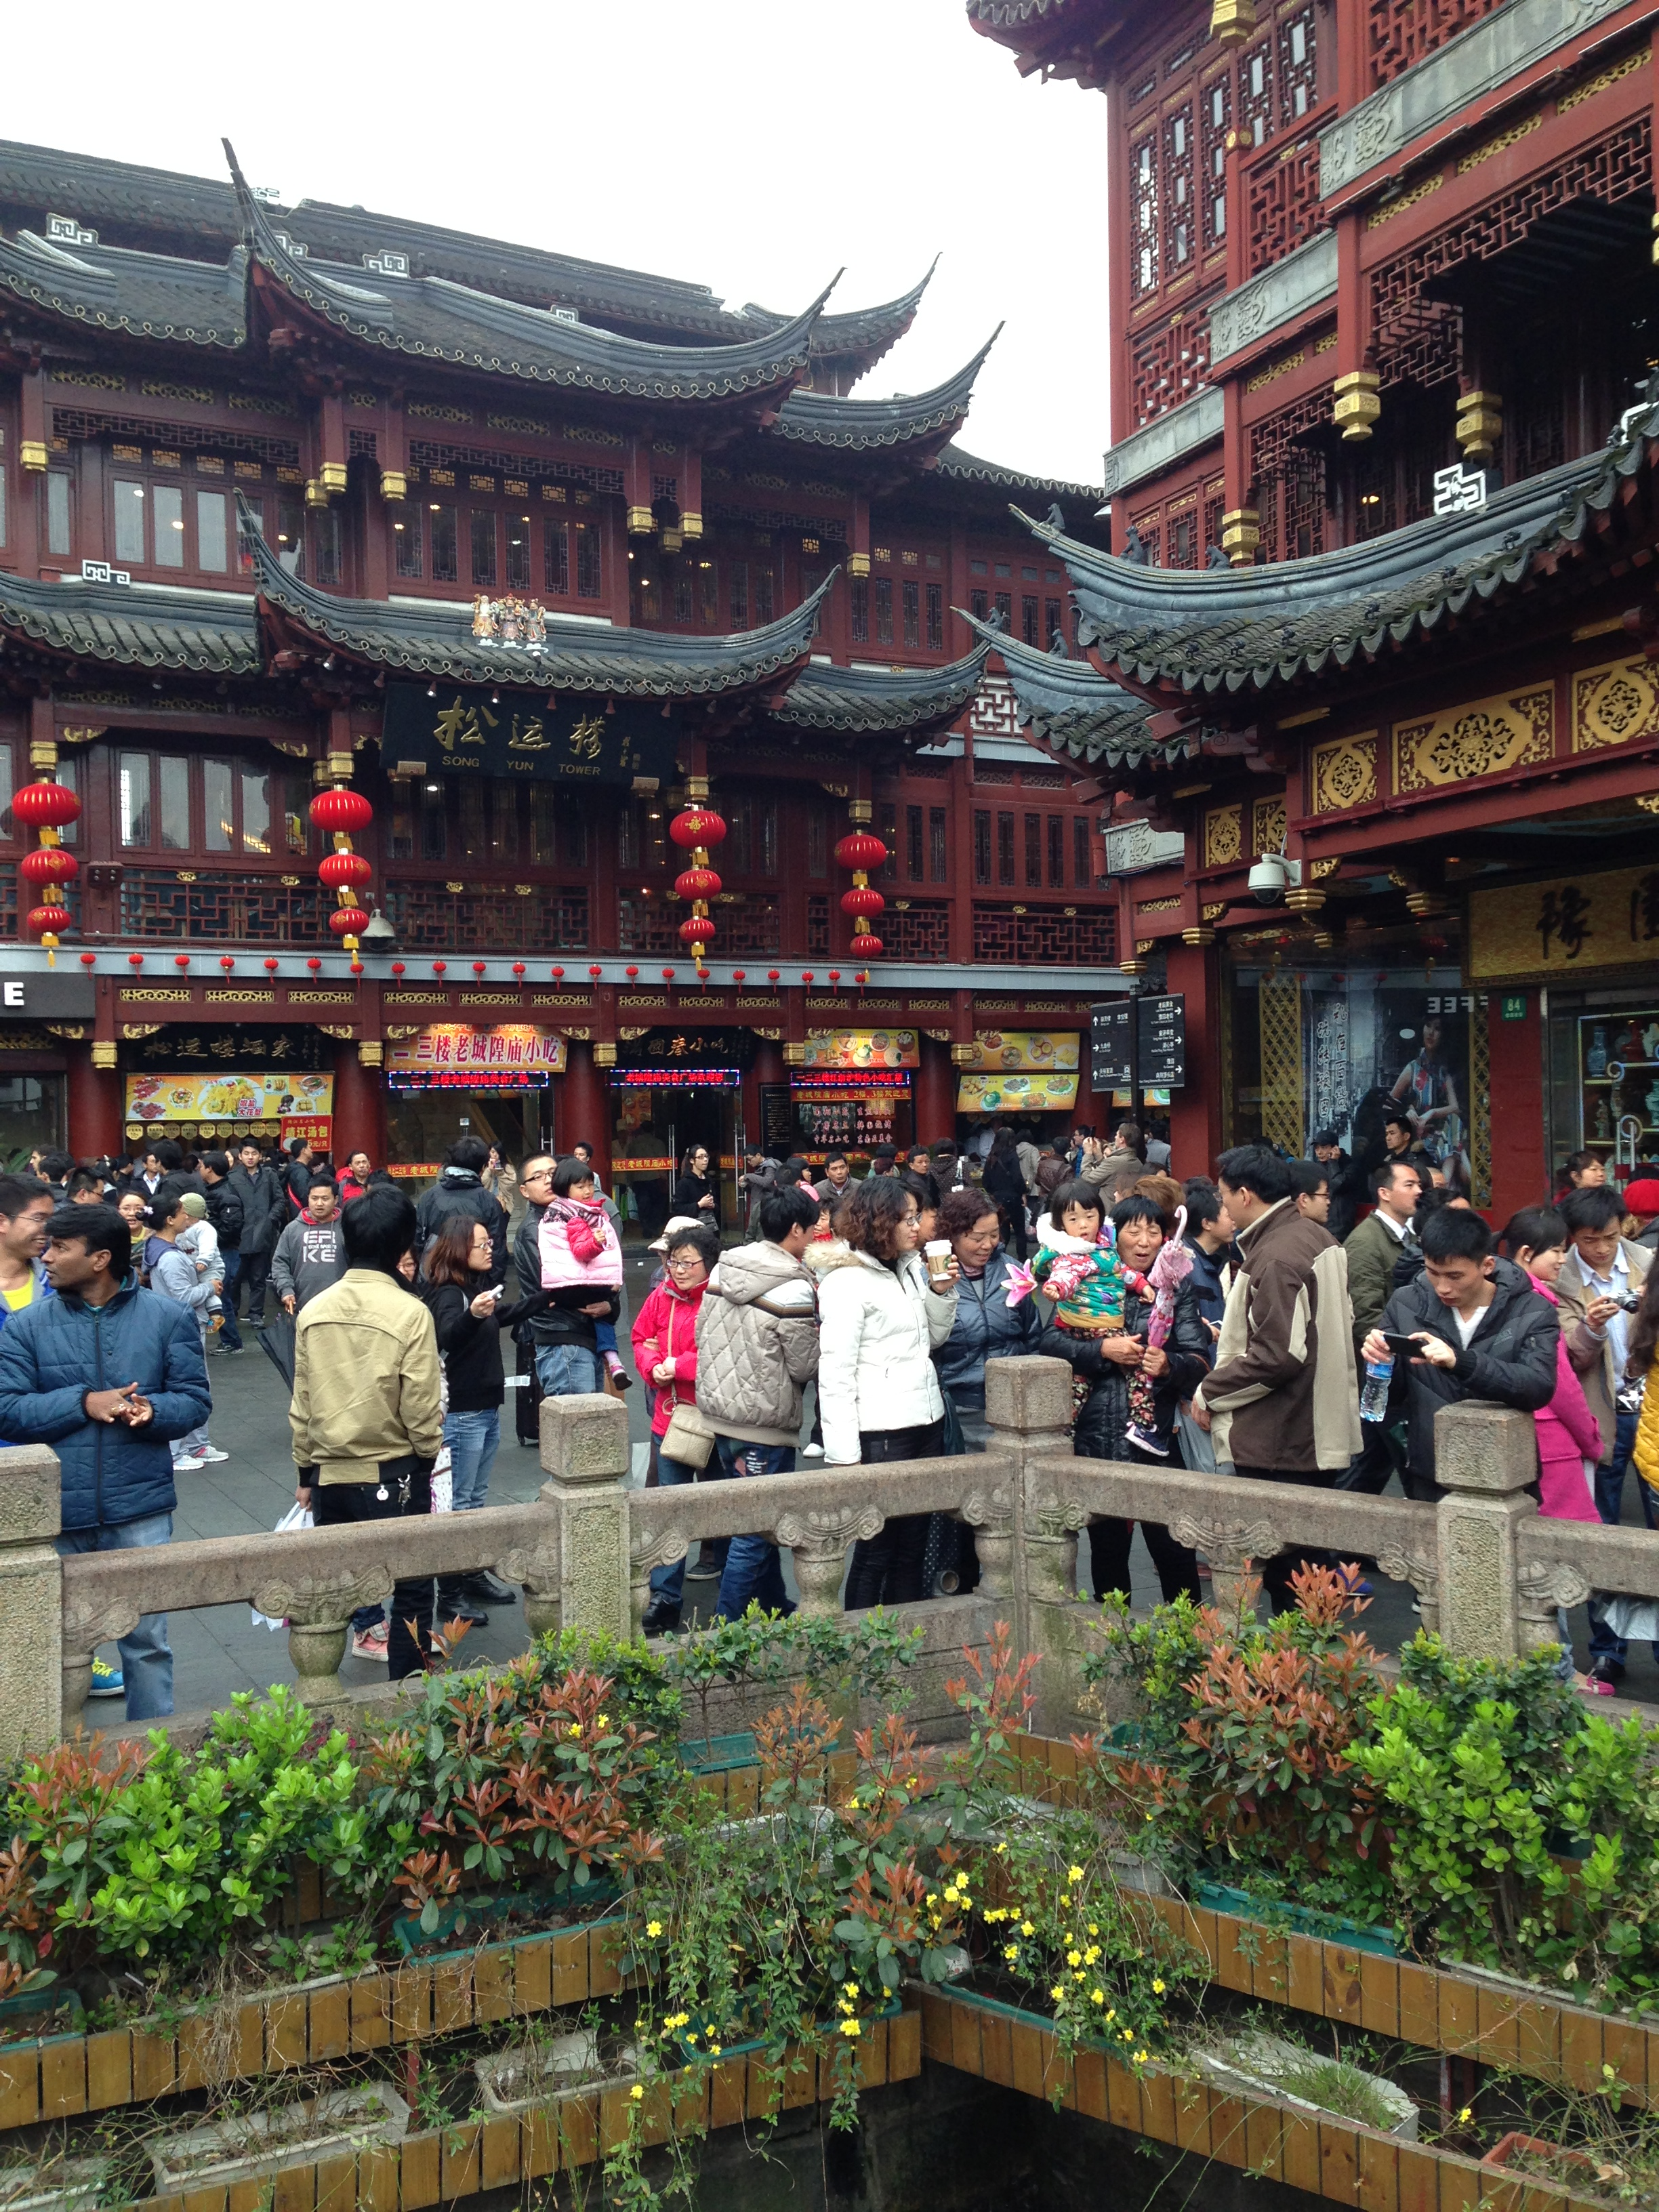 The Sights And Sounds Of The Yuyuan Garden In Shanghai